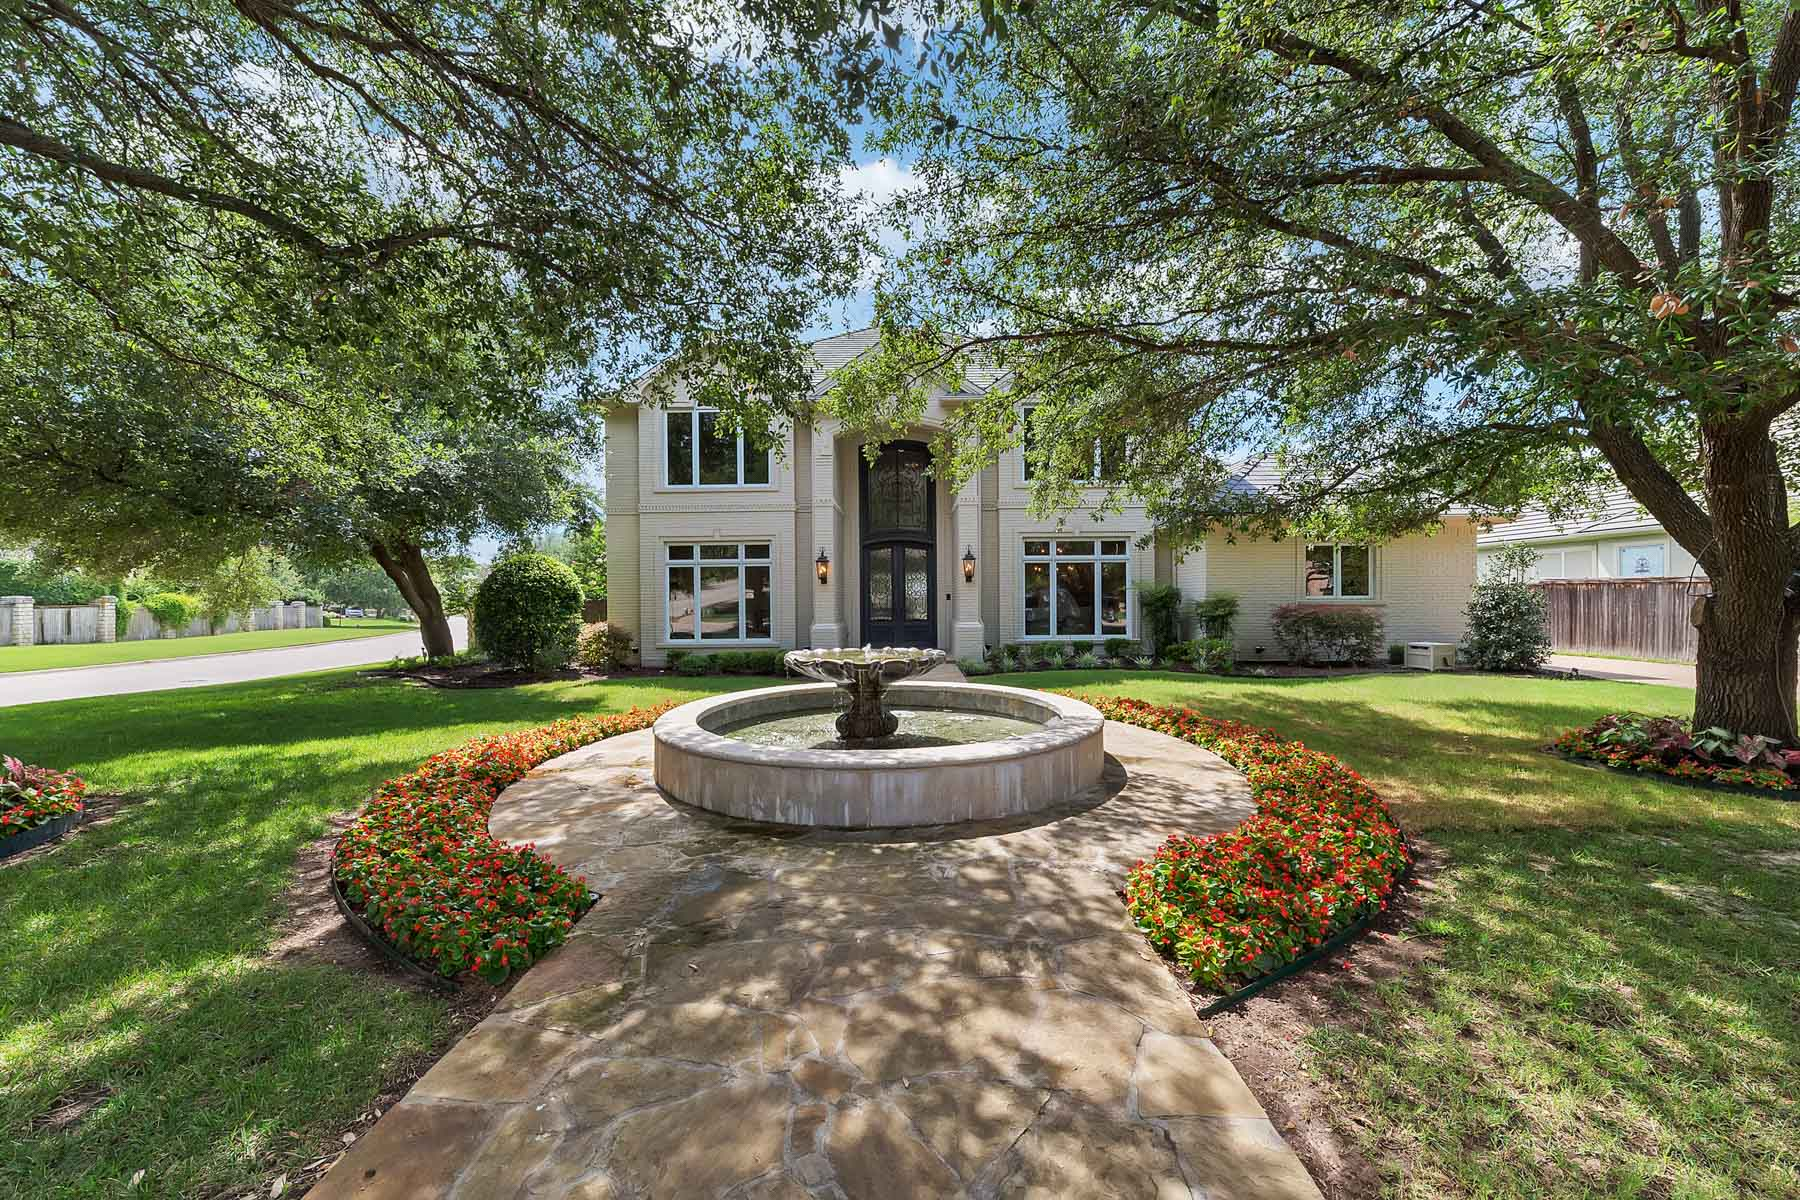 Single Family Home for Rent at 6528 Turnberry Drive 6528 Turnberry Drive Fort Worth, Texas 76132 United States